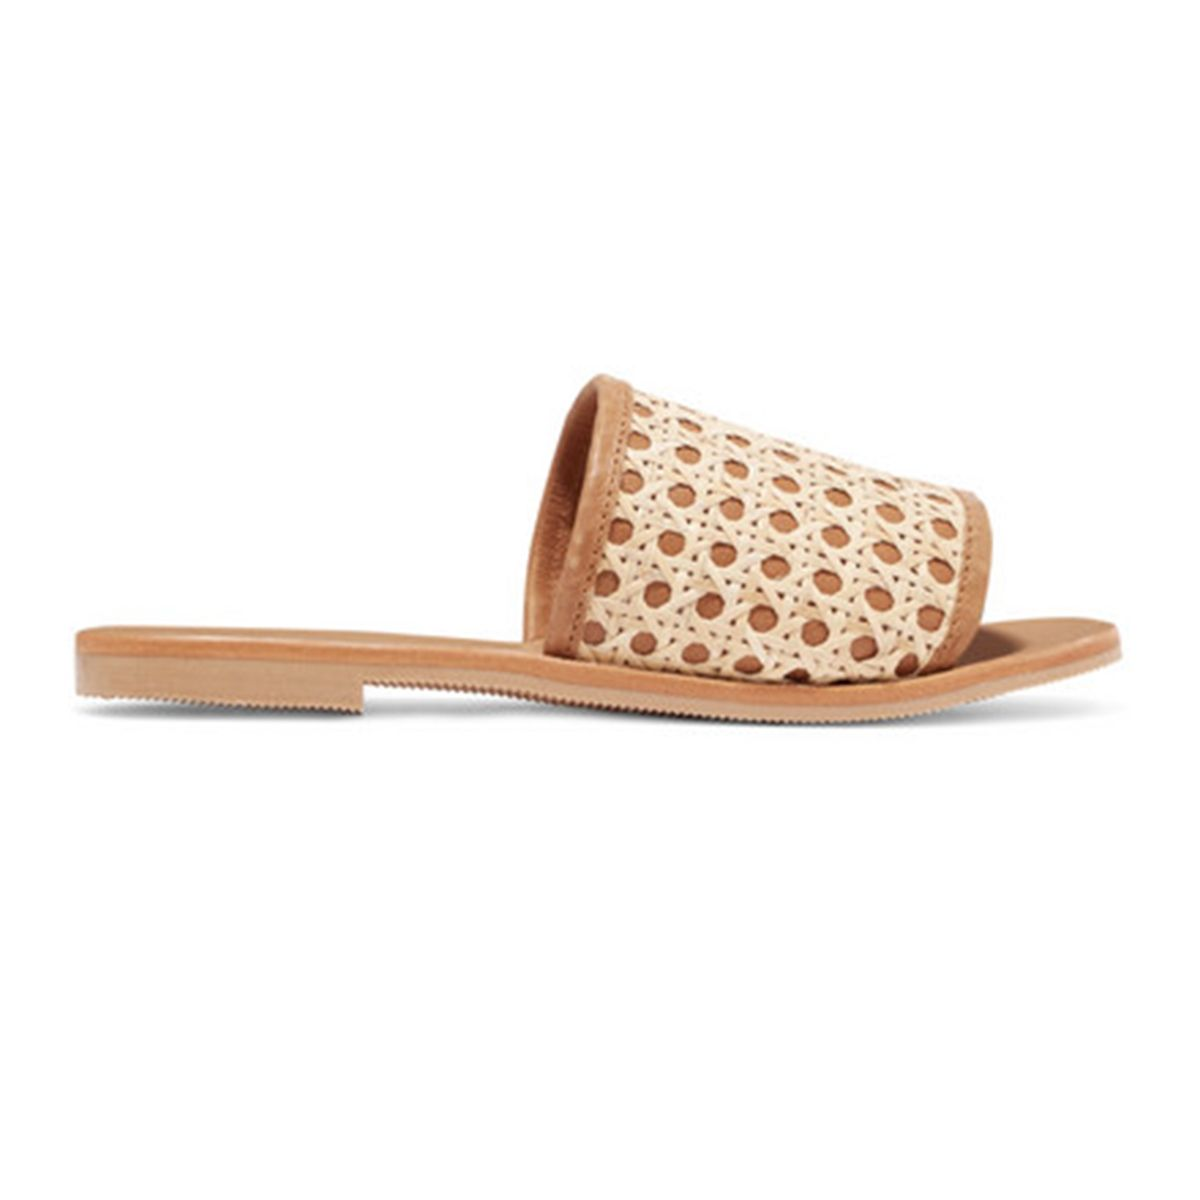 Henni leather and rattan slides